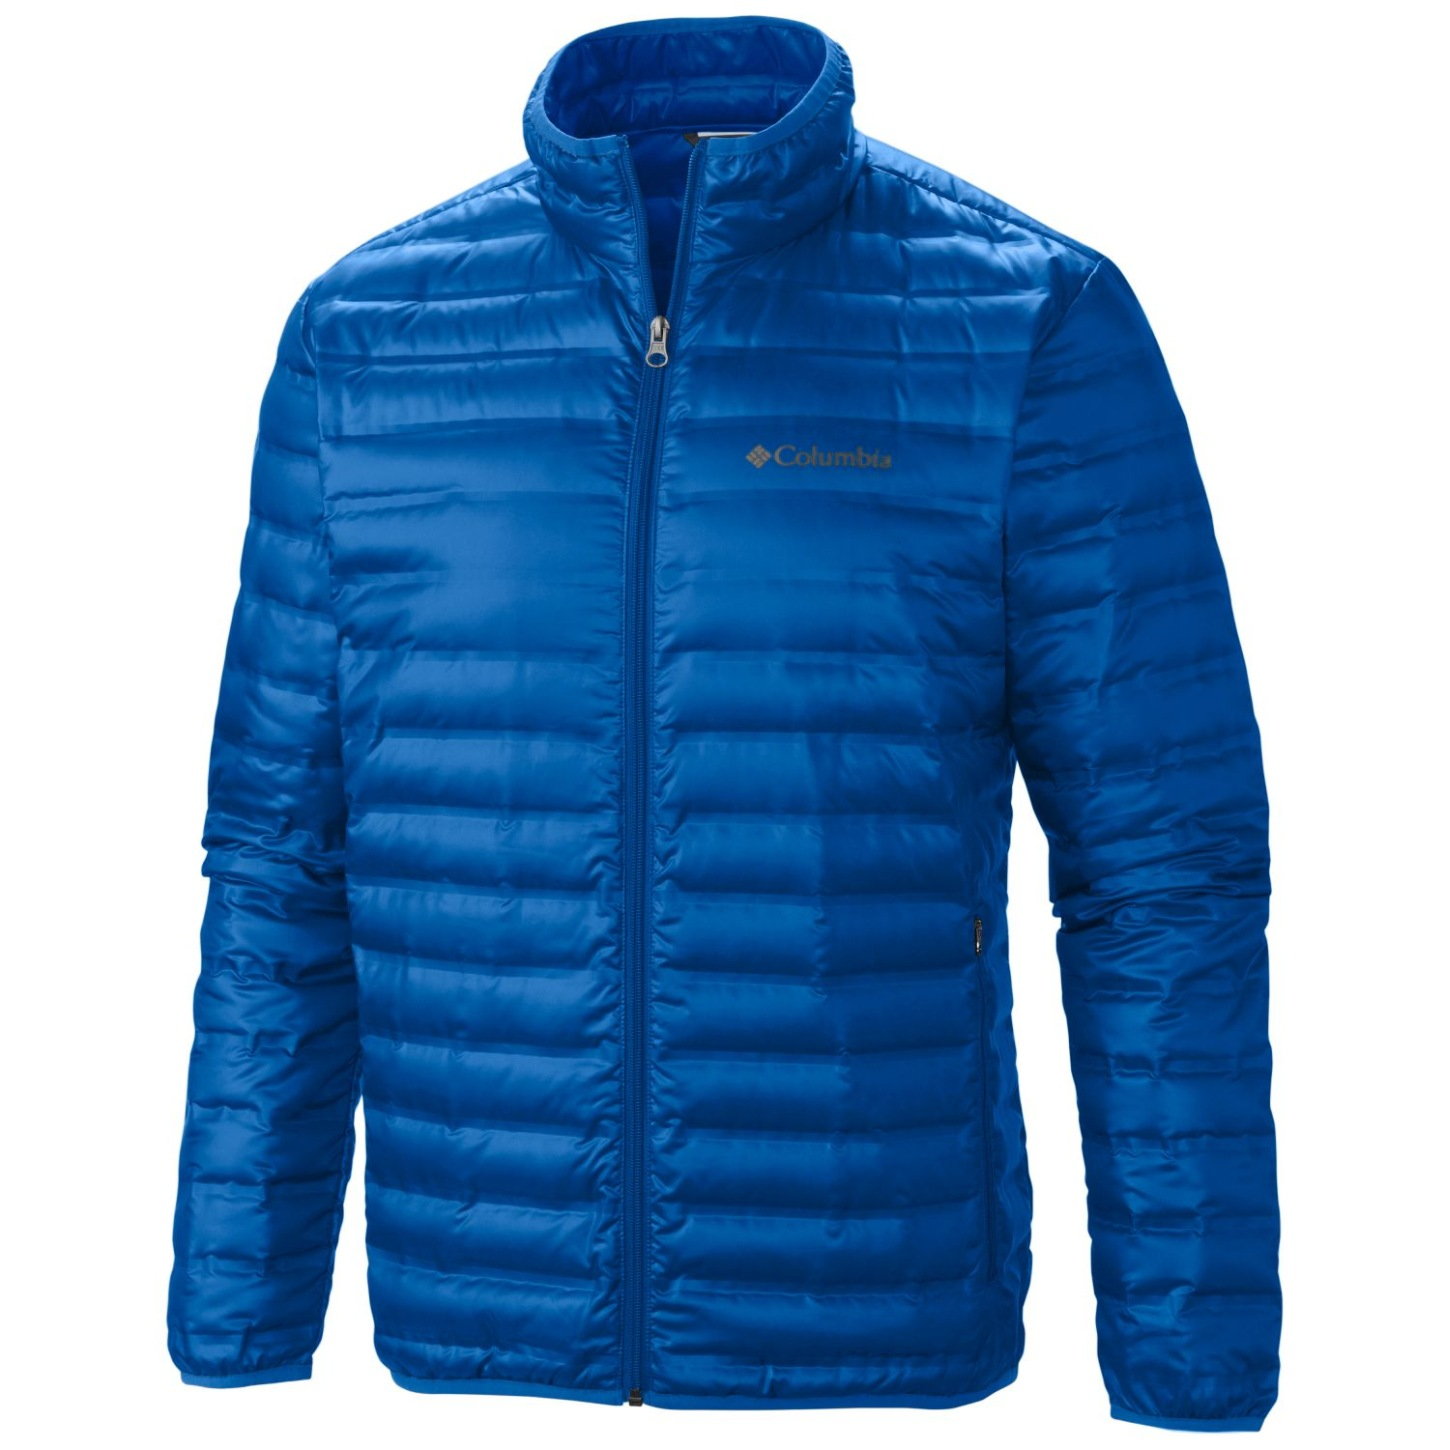 Columbia Flash Forward Daunenjacke für Herren Super Blue-30